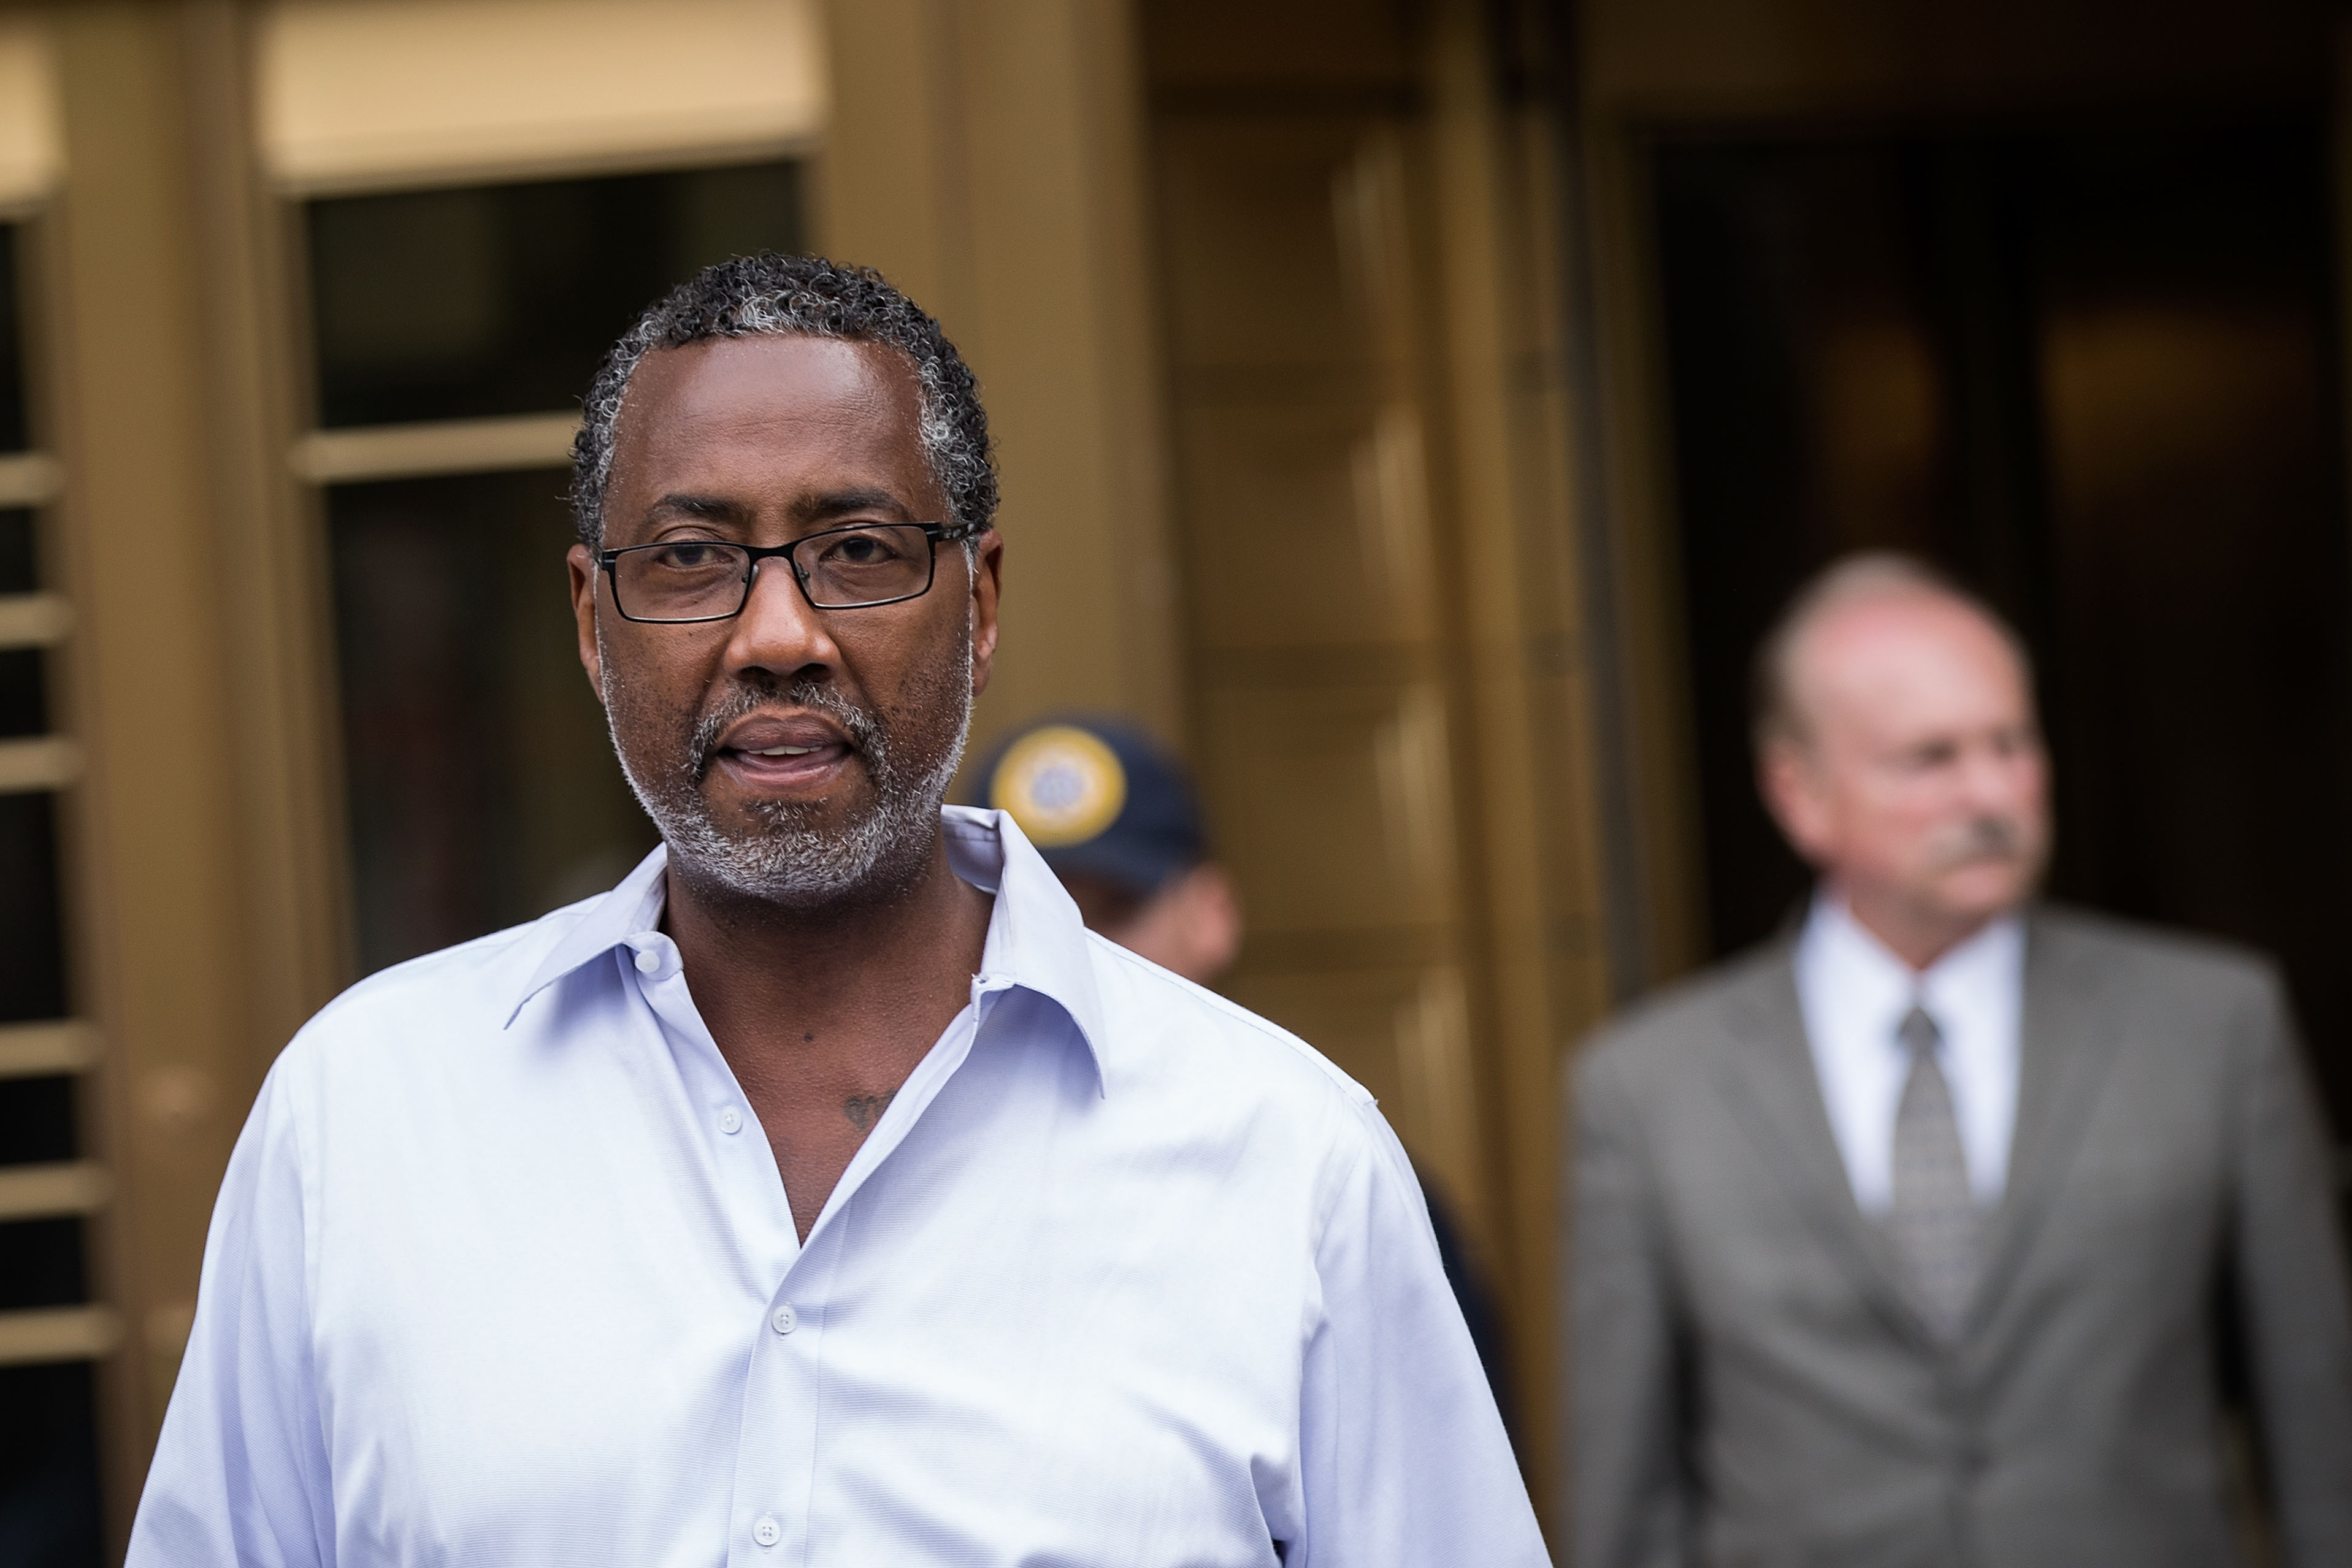 After being arrested on federal corruption charges, Norman Seabrook, president of the Correction Officers Benevolent Association, exits United States District Court for the Southern District on June 8.